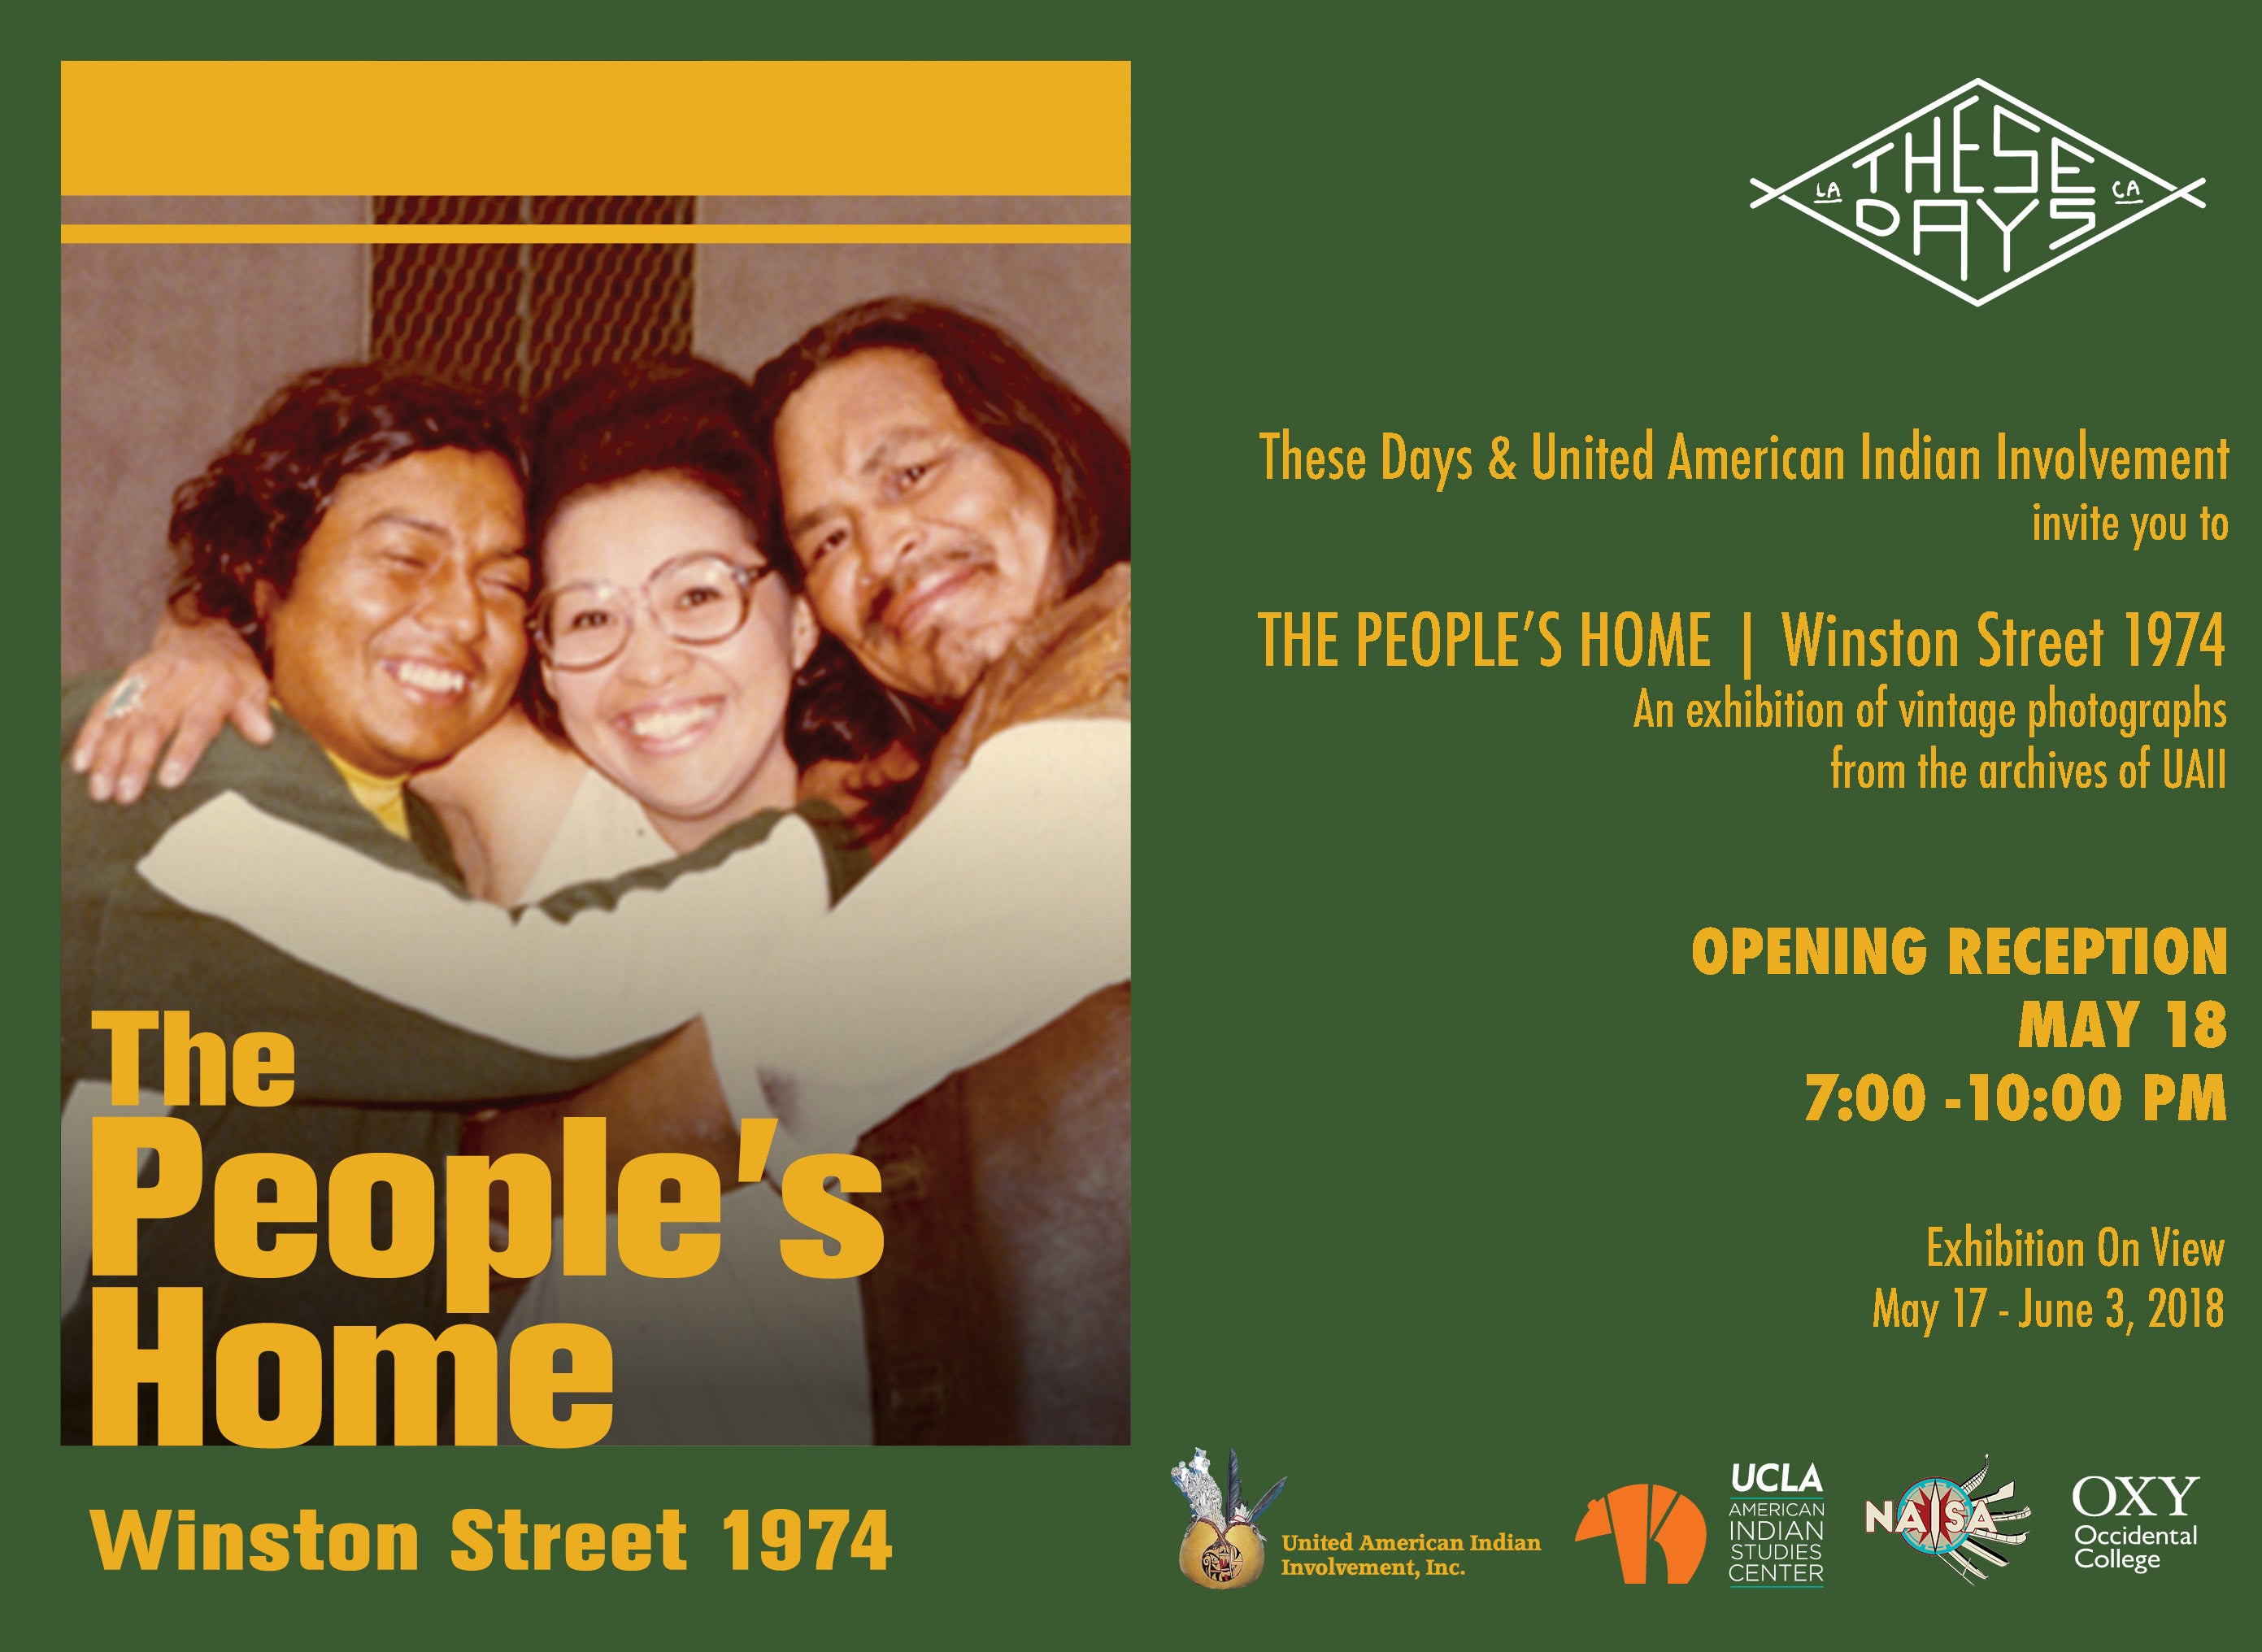 THE PEOPLE'S HOME | Winston Street 1974